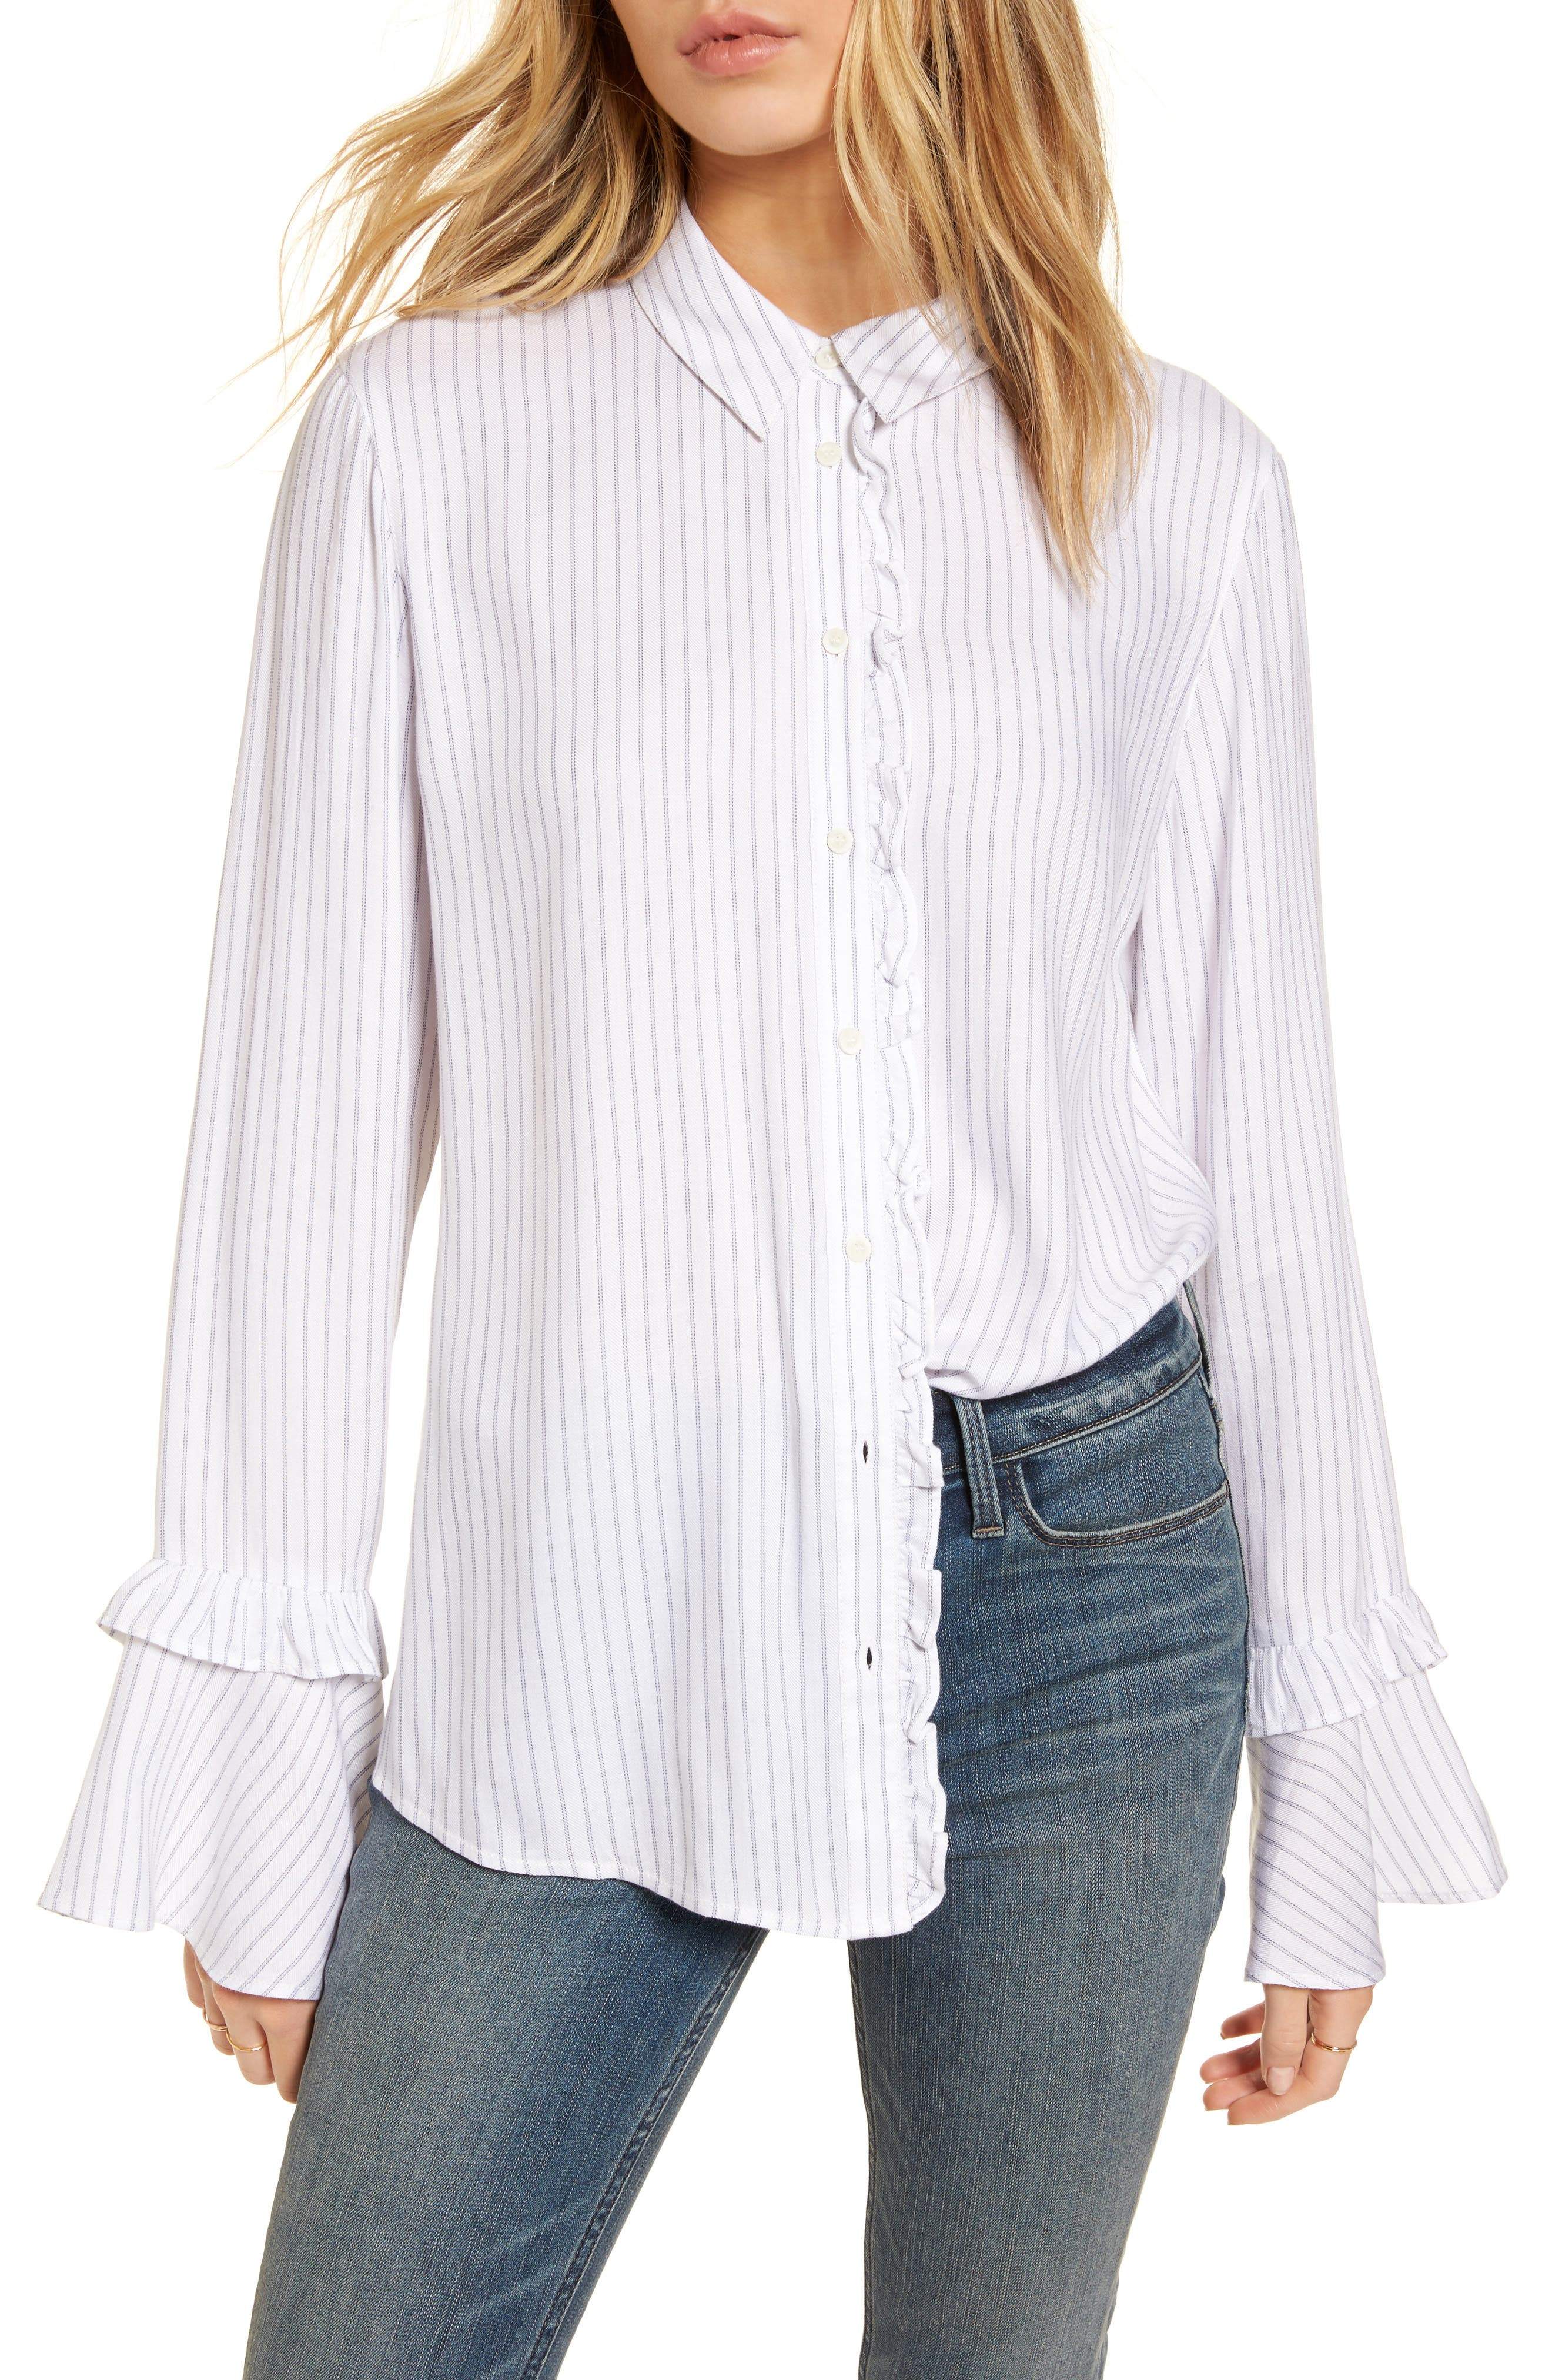 Women's White Shirts & Blouses Work Clothing | Nordstrom